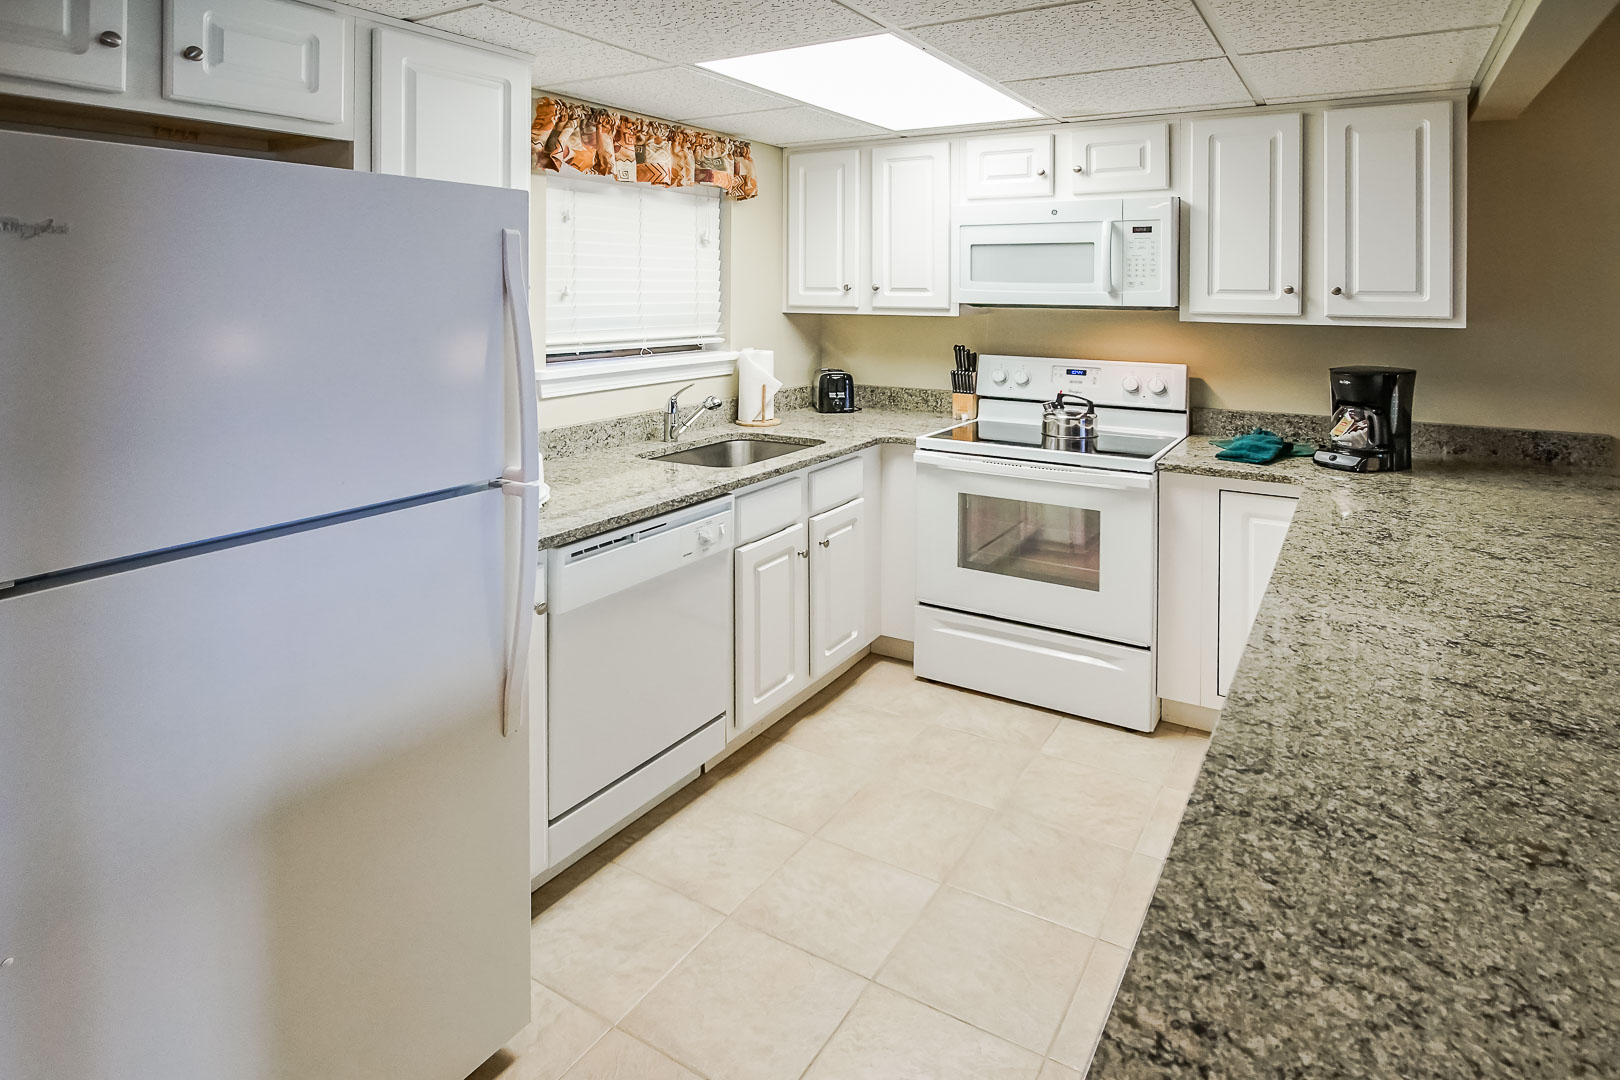 A spacious kitchen at VRI's Tanglwood Resort in Pennsylvania.